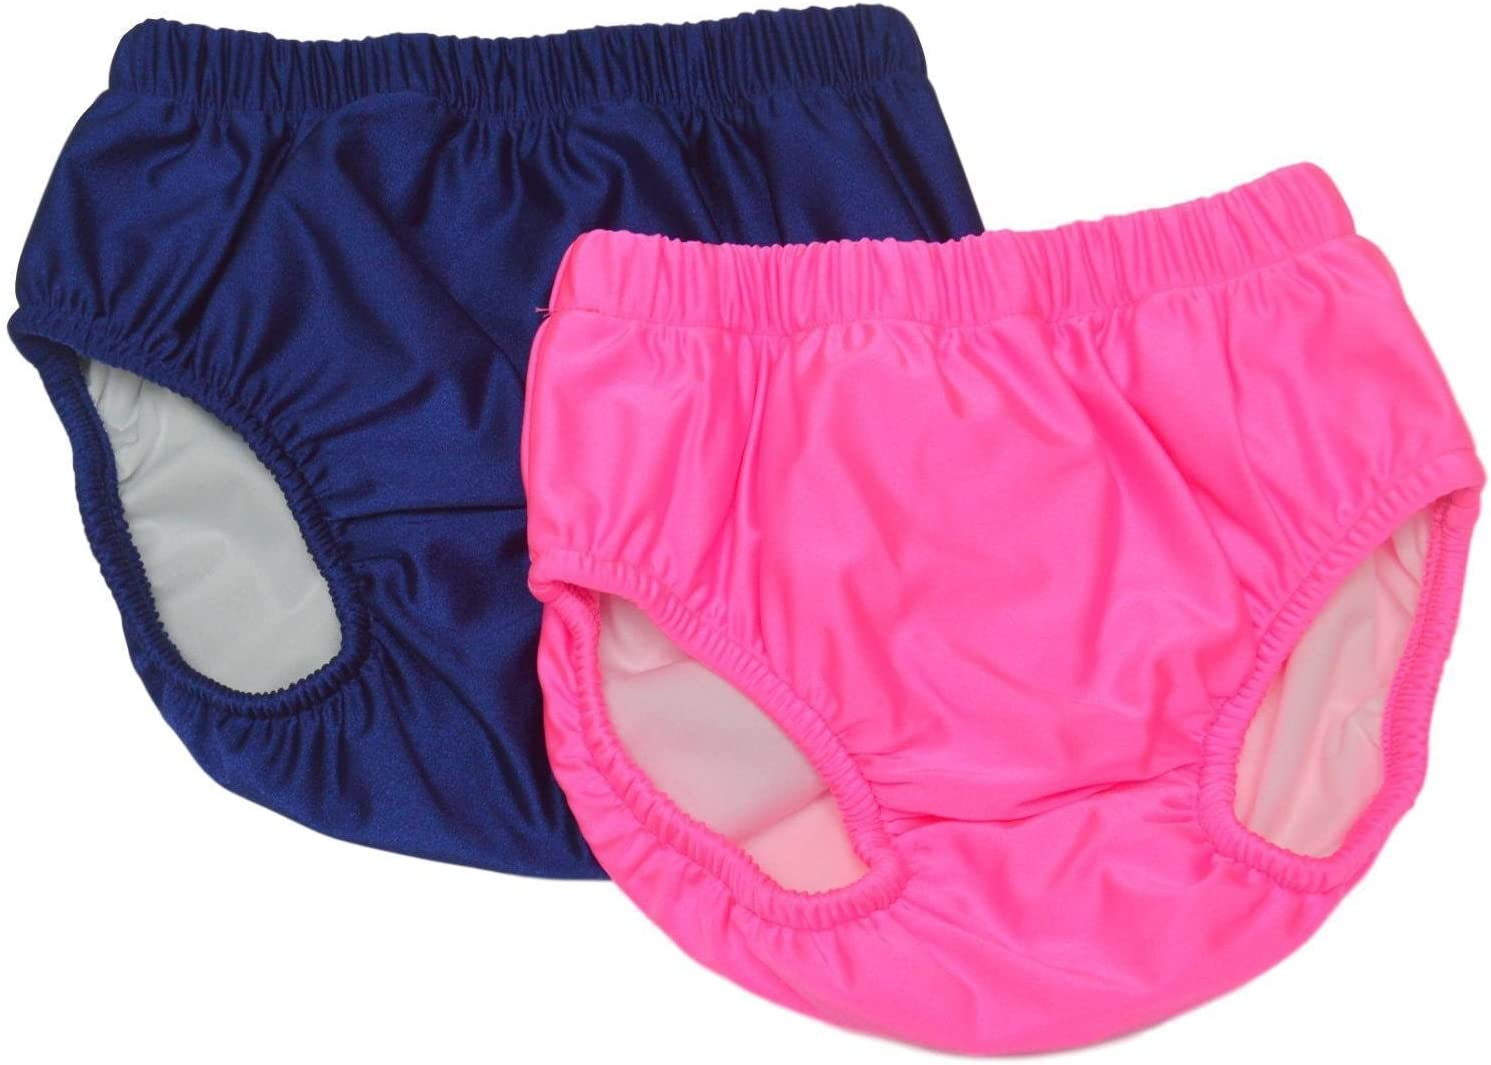 Adult Swim Diapers S-Waist: 26-36; Leg: 17-23, White by Swimsters Reusable Diaper for the Pool